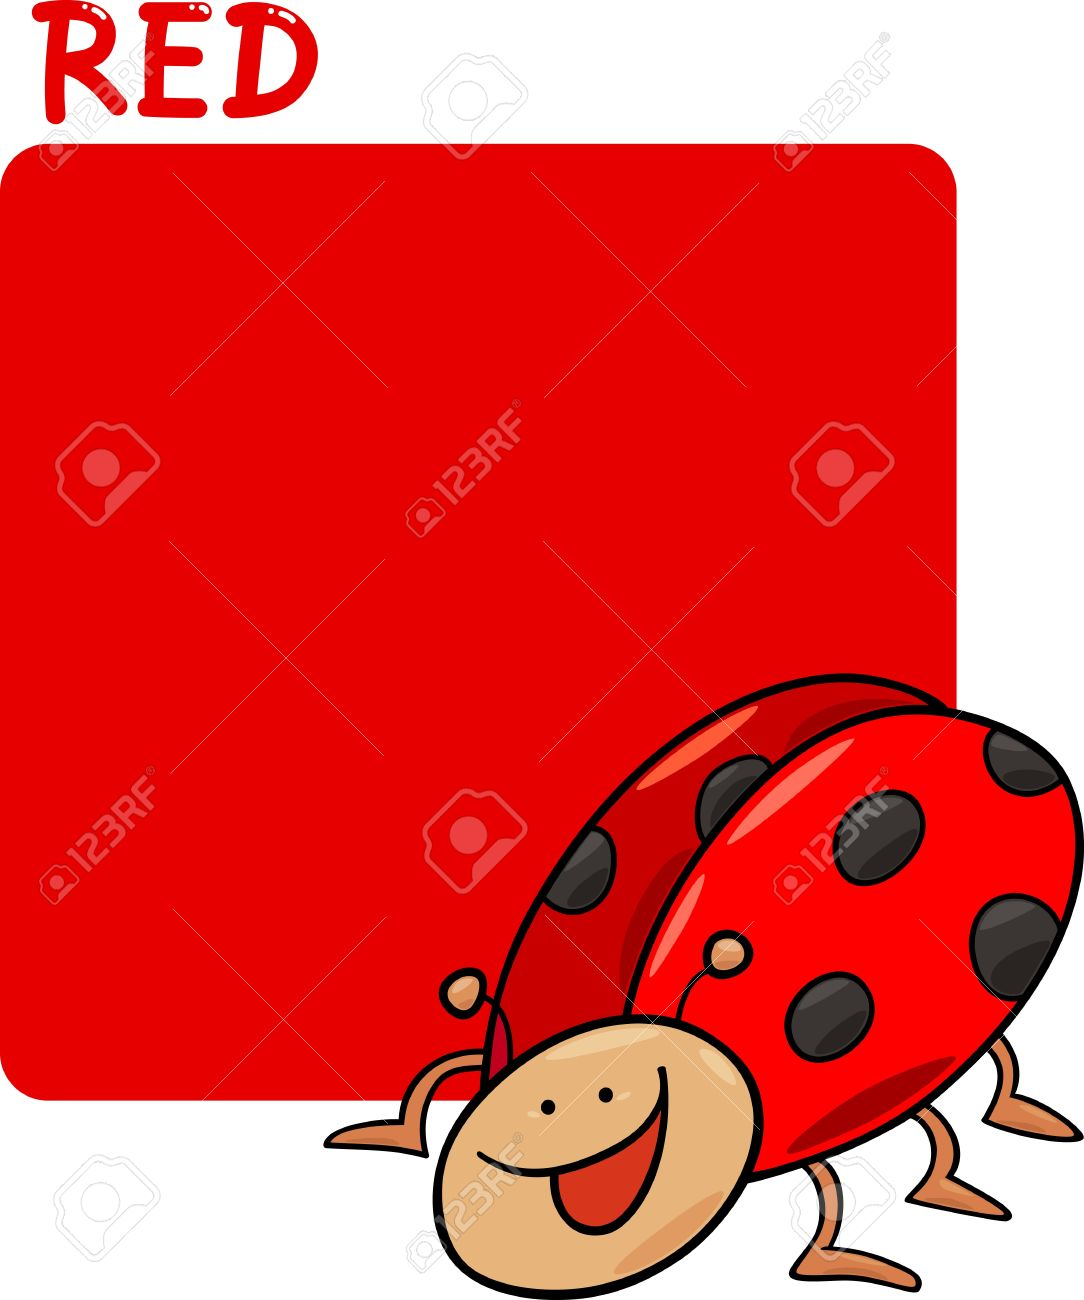 Cartoon Illustration of Color Red and Ladybug Stock Vector - 14169991